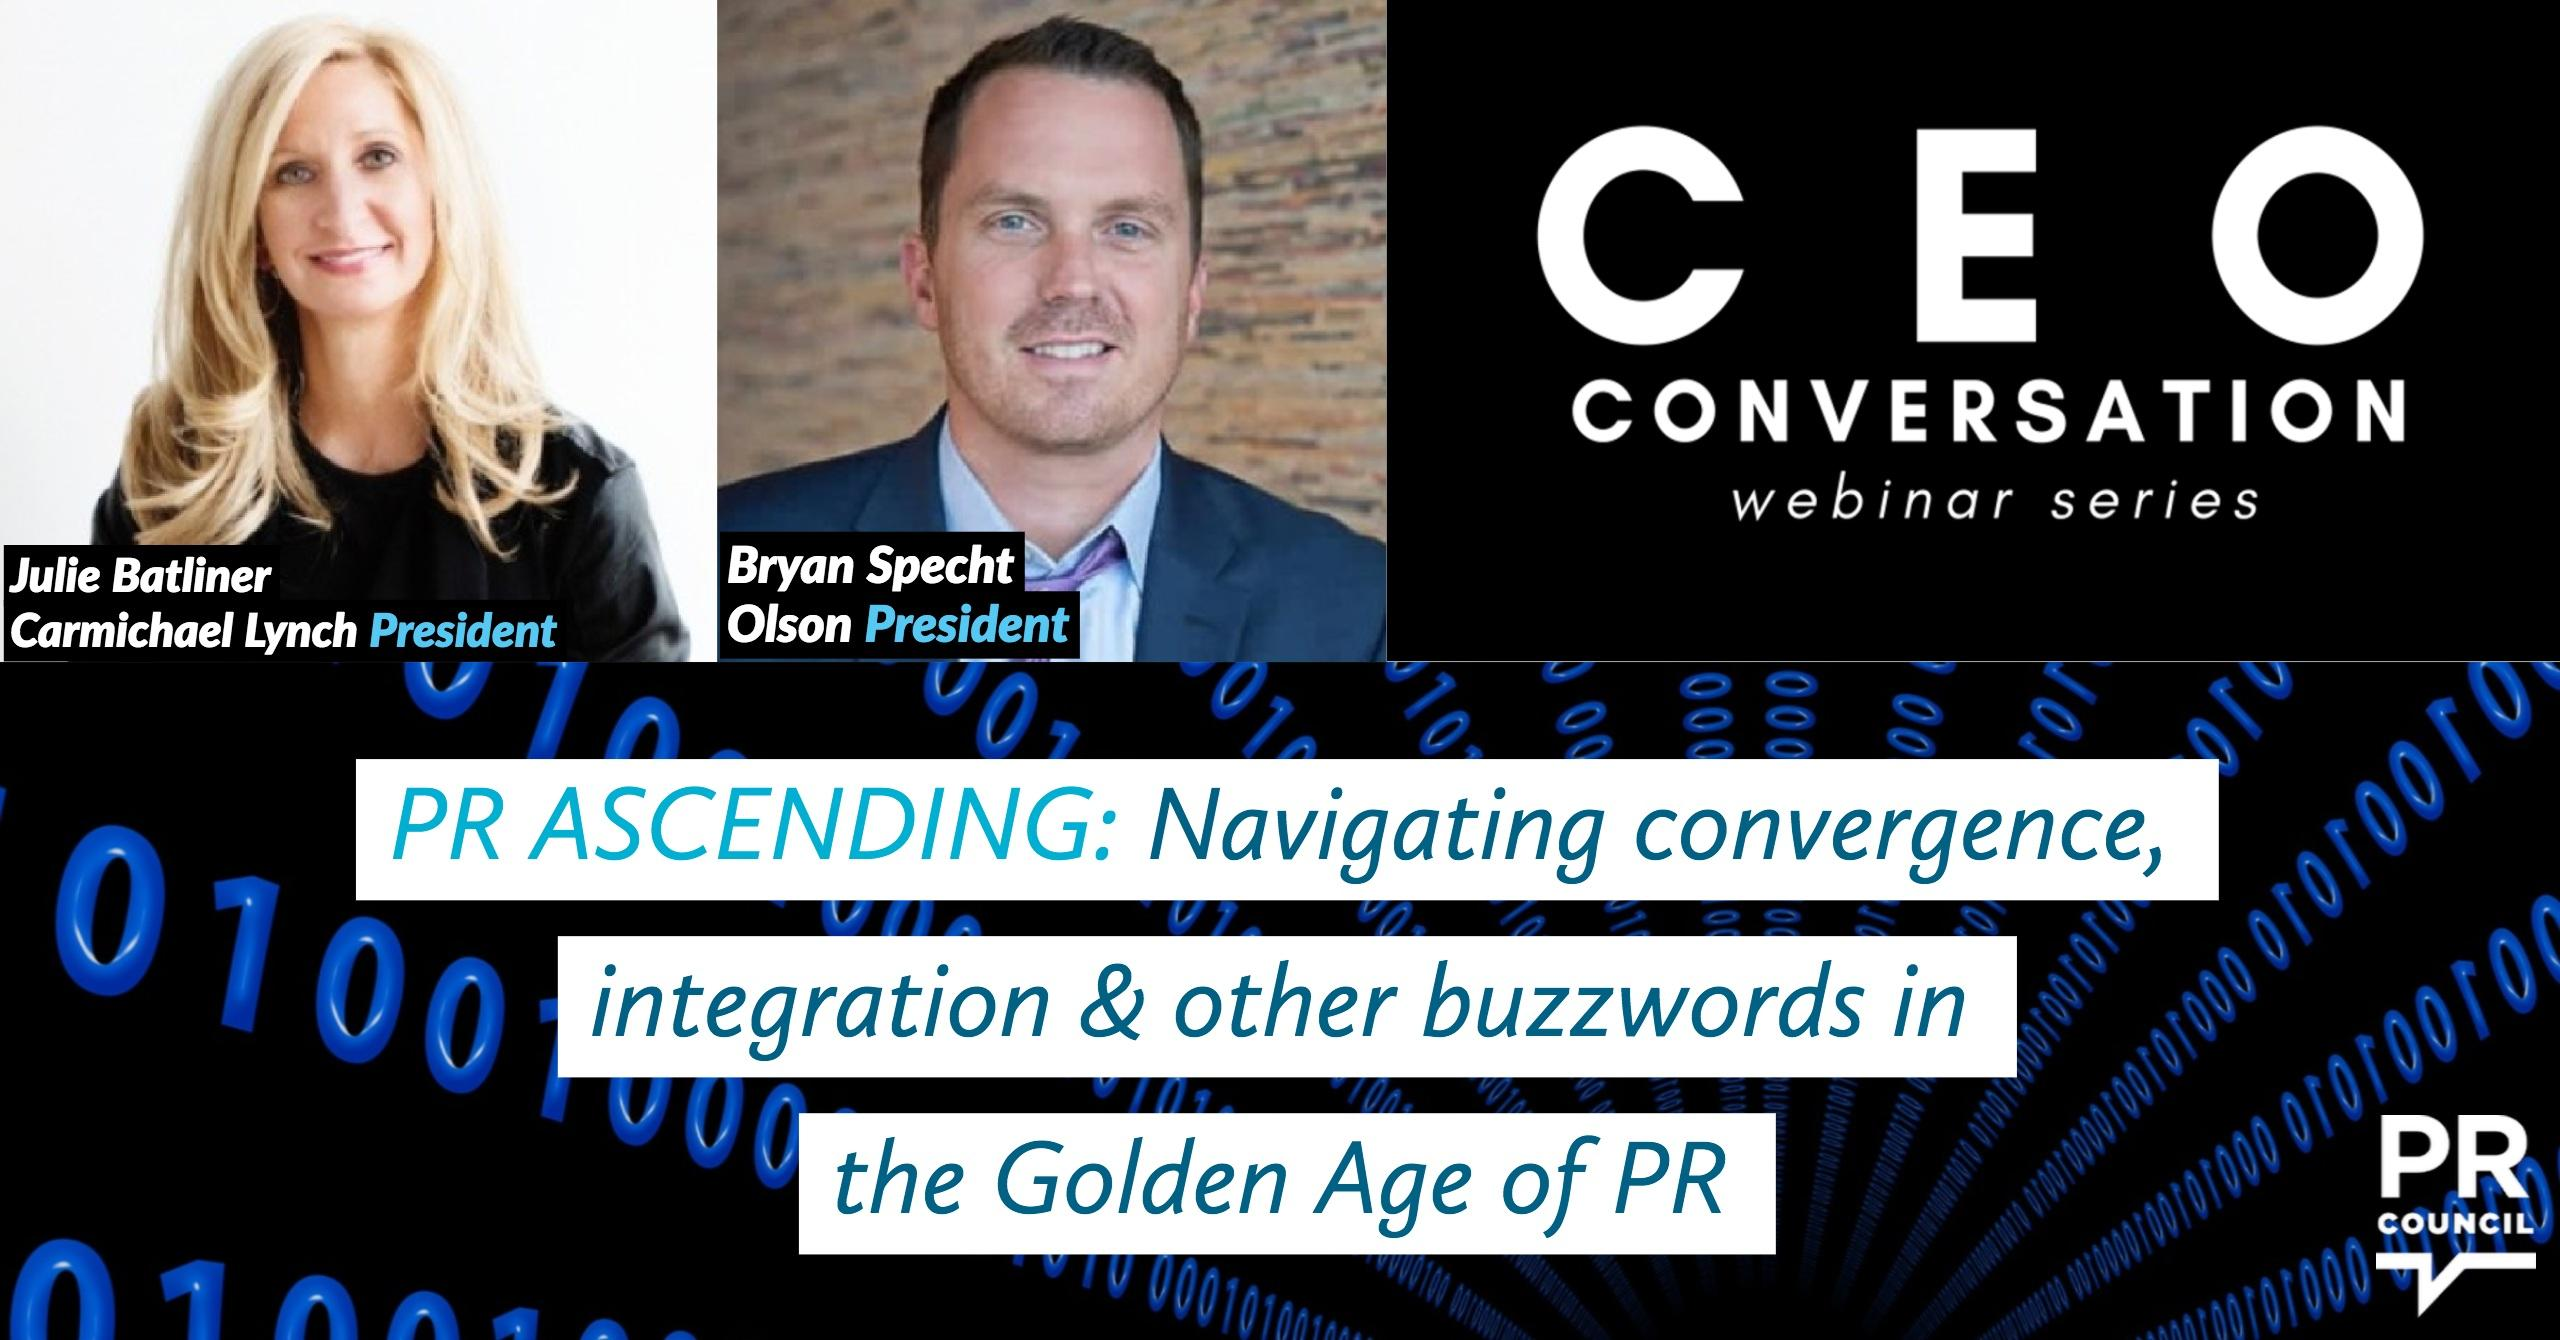 CEO Conversation - PR Ascending: Navigating convergence, integration and all the other buzzwords in the Golden Age of PR